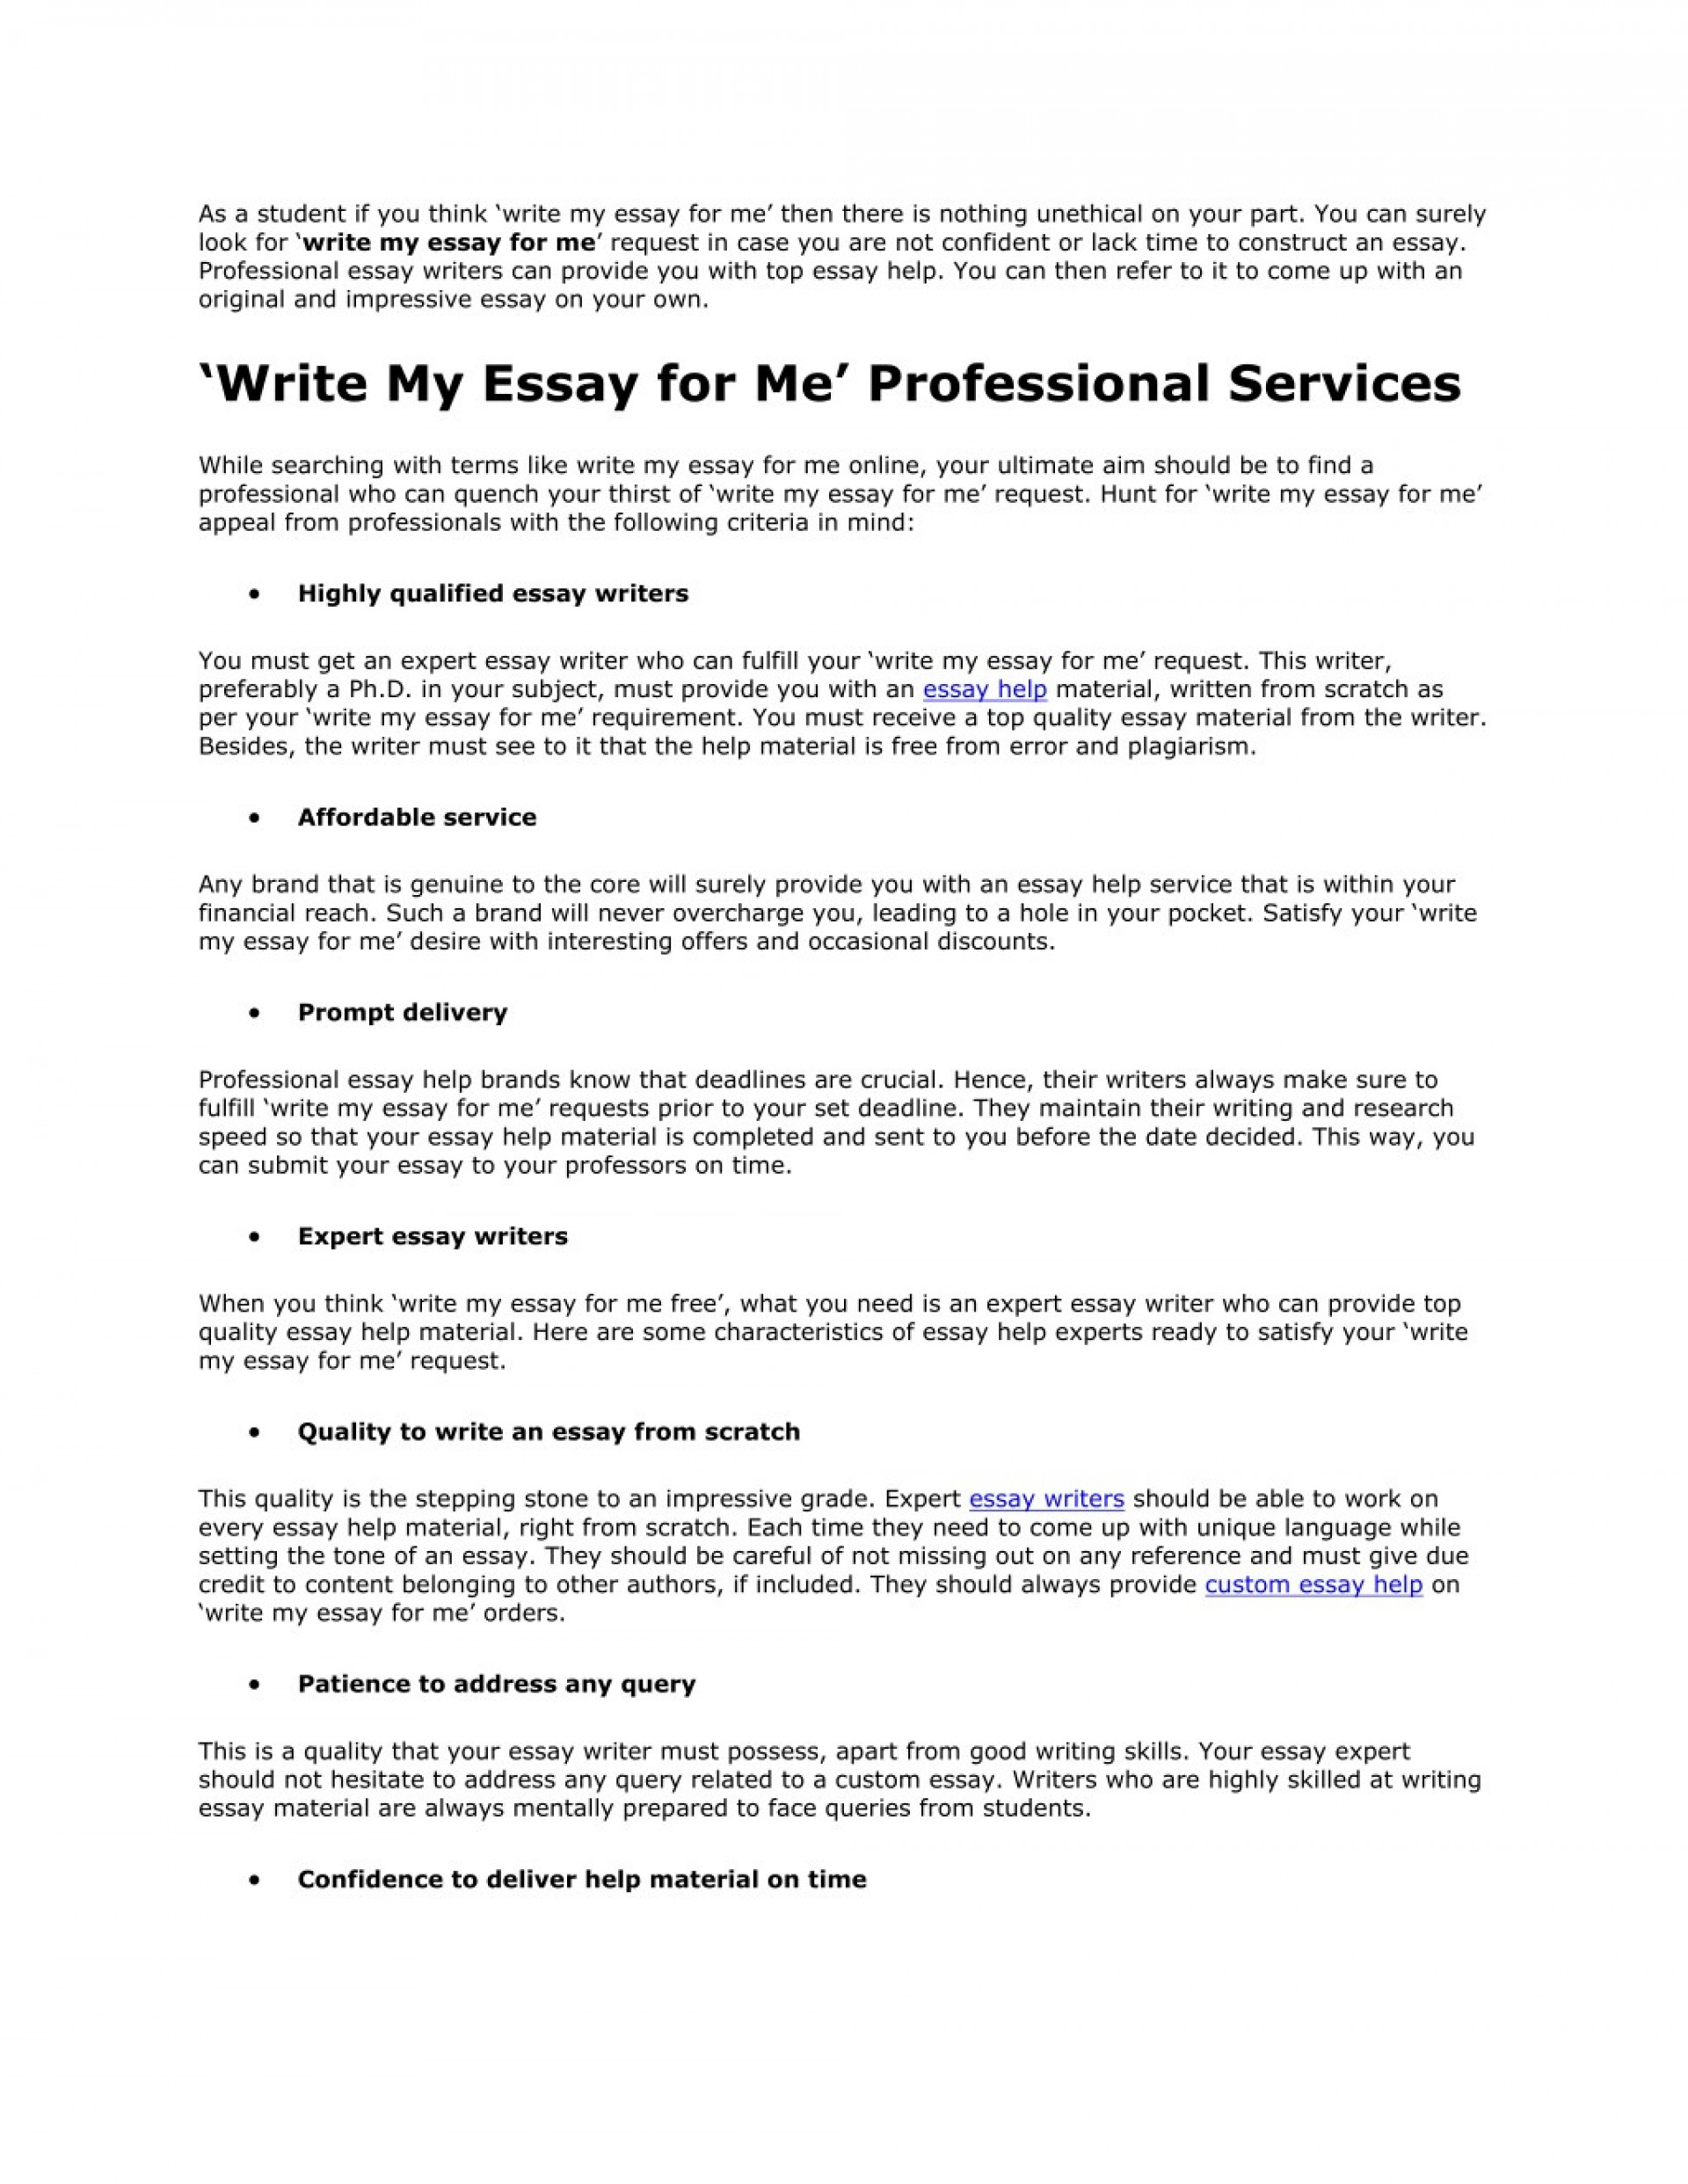 017 Write My Essay For Me Example As Student If You Think Surprising Me.org Free Online Uk 1920